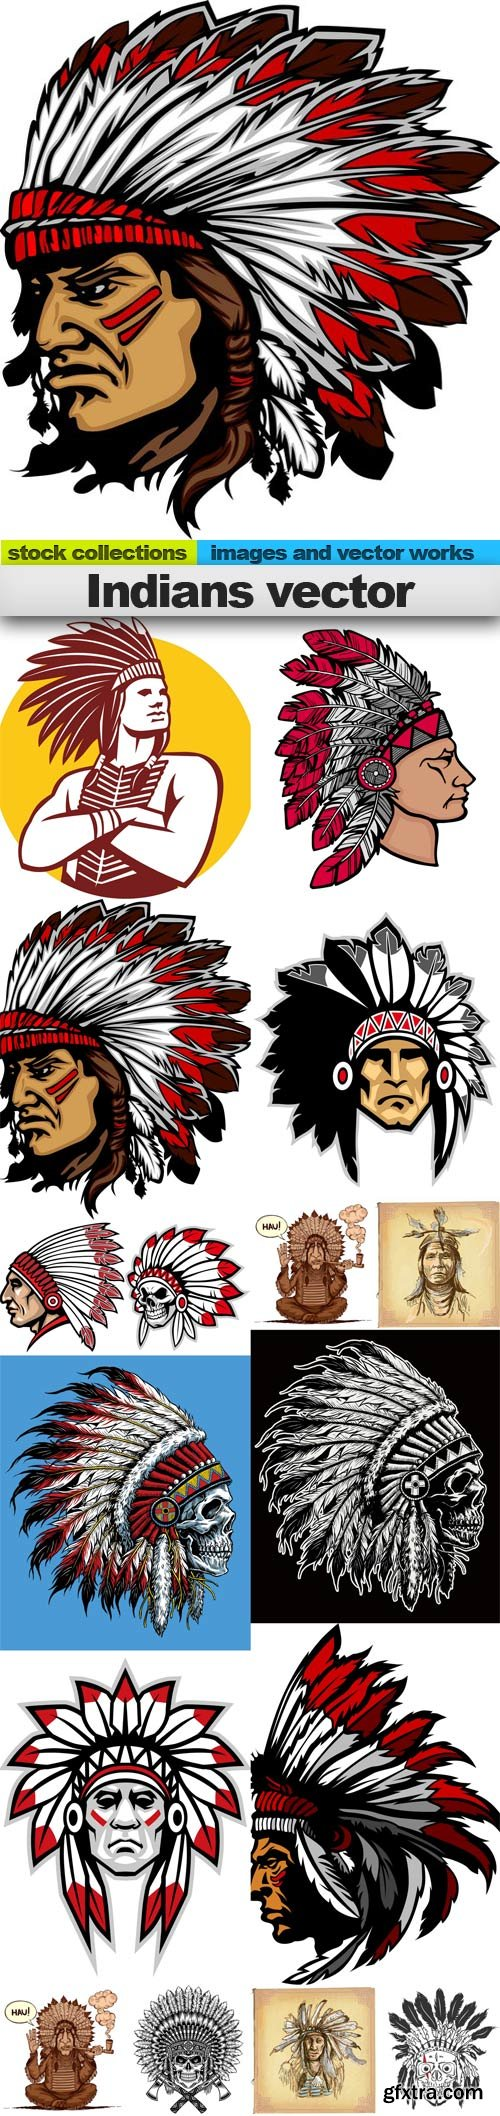 Indians vector, 15 x EPS